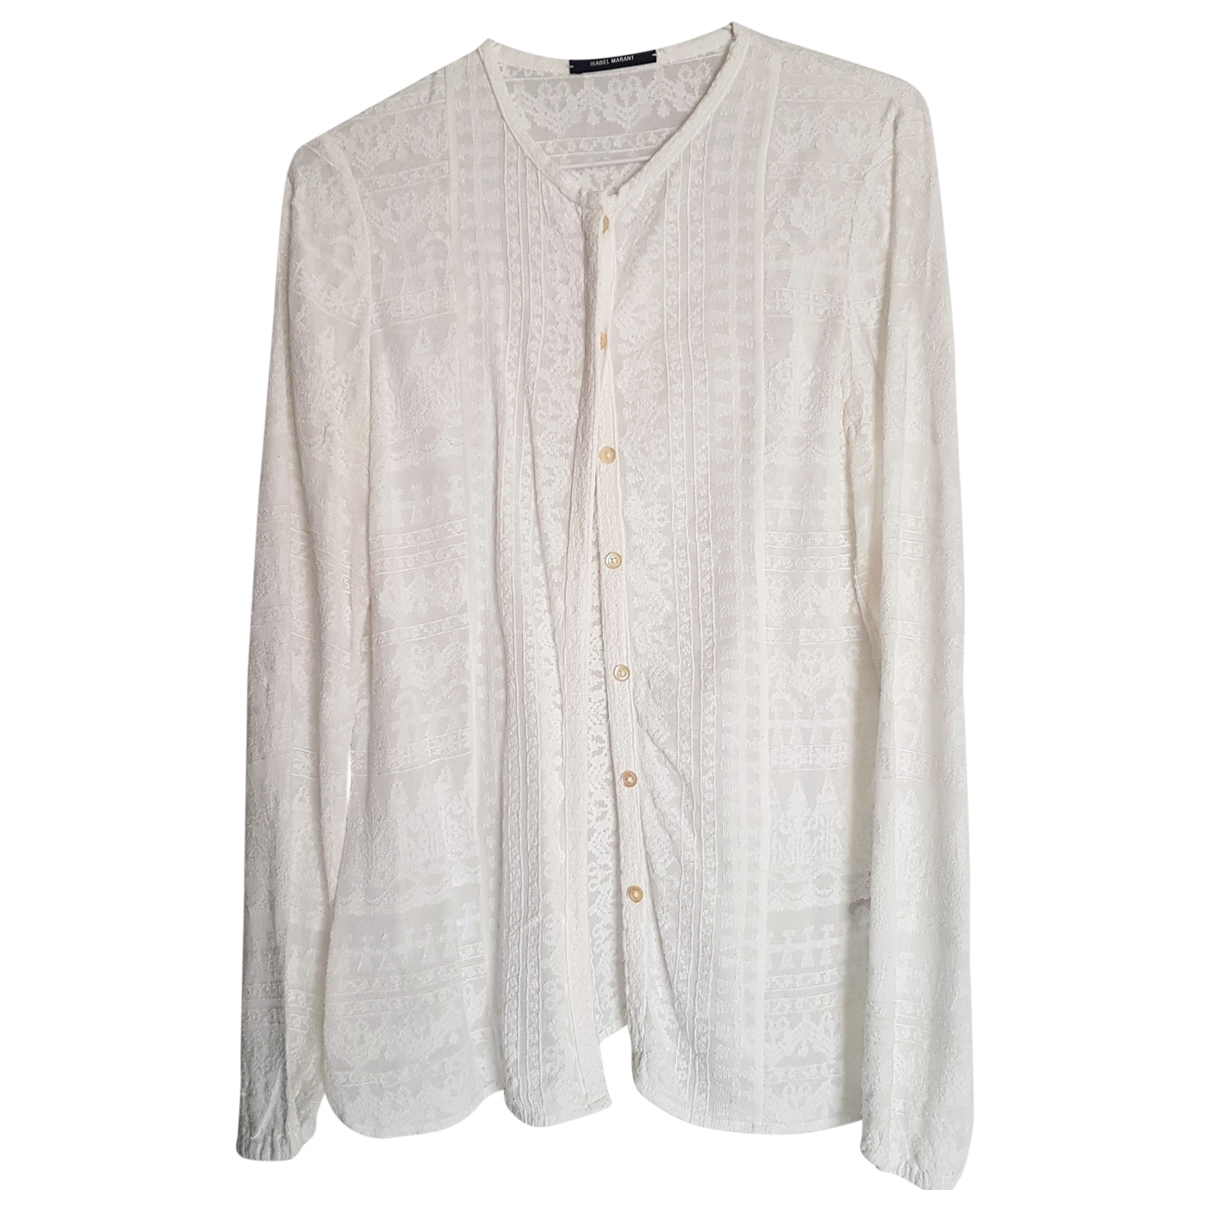 Isabel Marant \N White  top for Women 36 FR